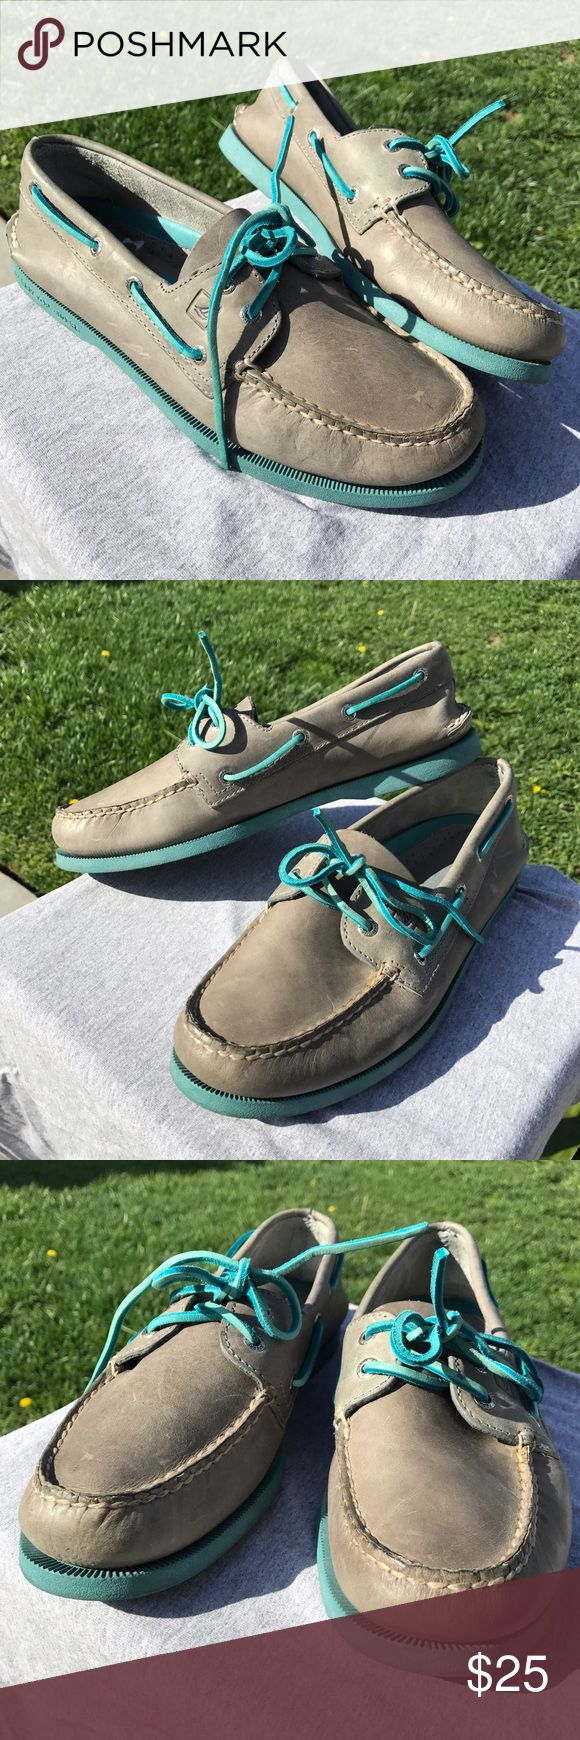 Men's Sperry boat shoes blue Grey sperry boat shoes //Euc // very little heel wear // blue and blue shoes // size 10 men // great for summer Sperry Top-Sider Shoes Boat Shoes